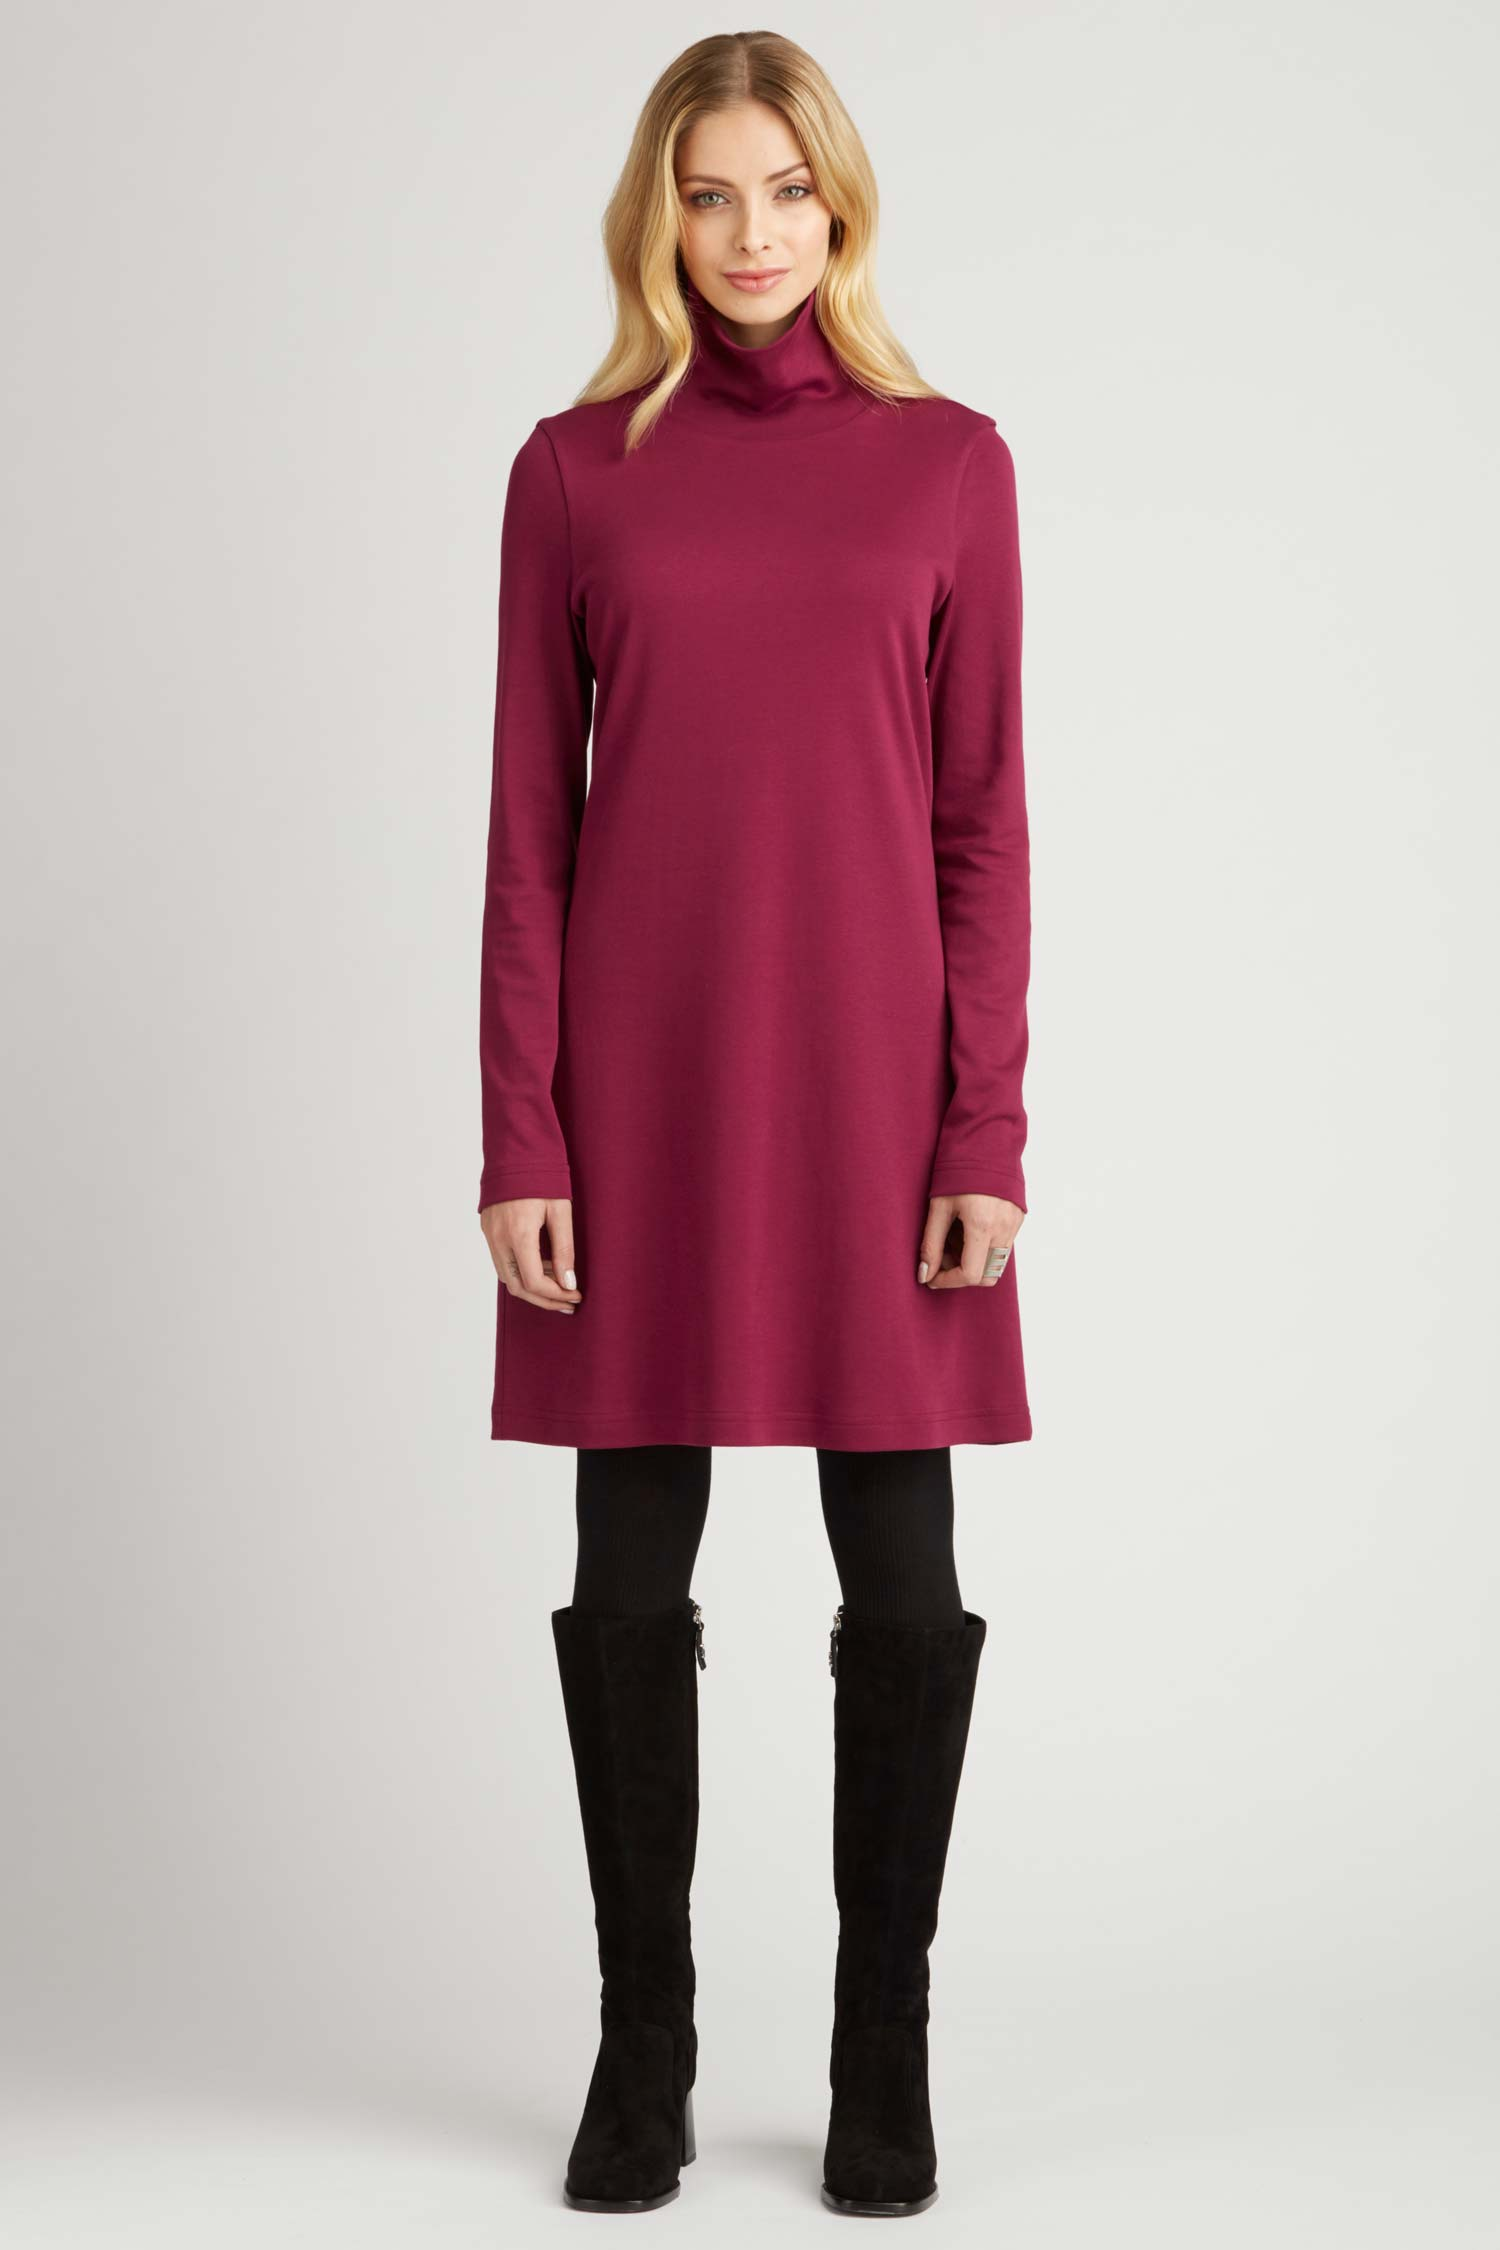 Womens Turtleneck Dress in Pink | Ethical Fashion